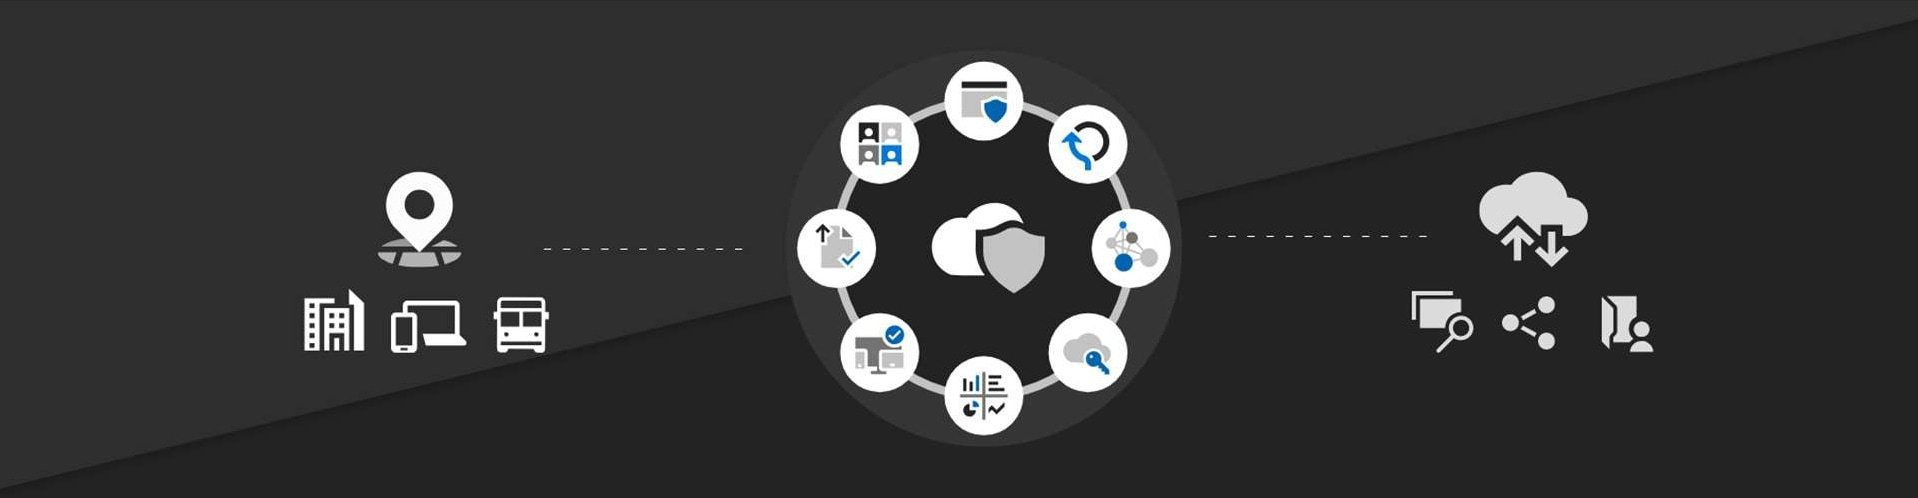 Infographic representing all the elements of Microsoft Cloud App Security working as an integrated system to provide security for cloud apps and services